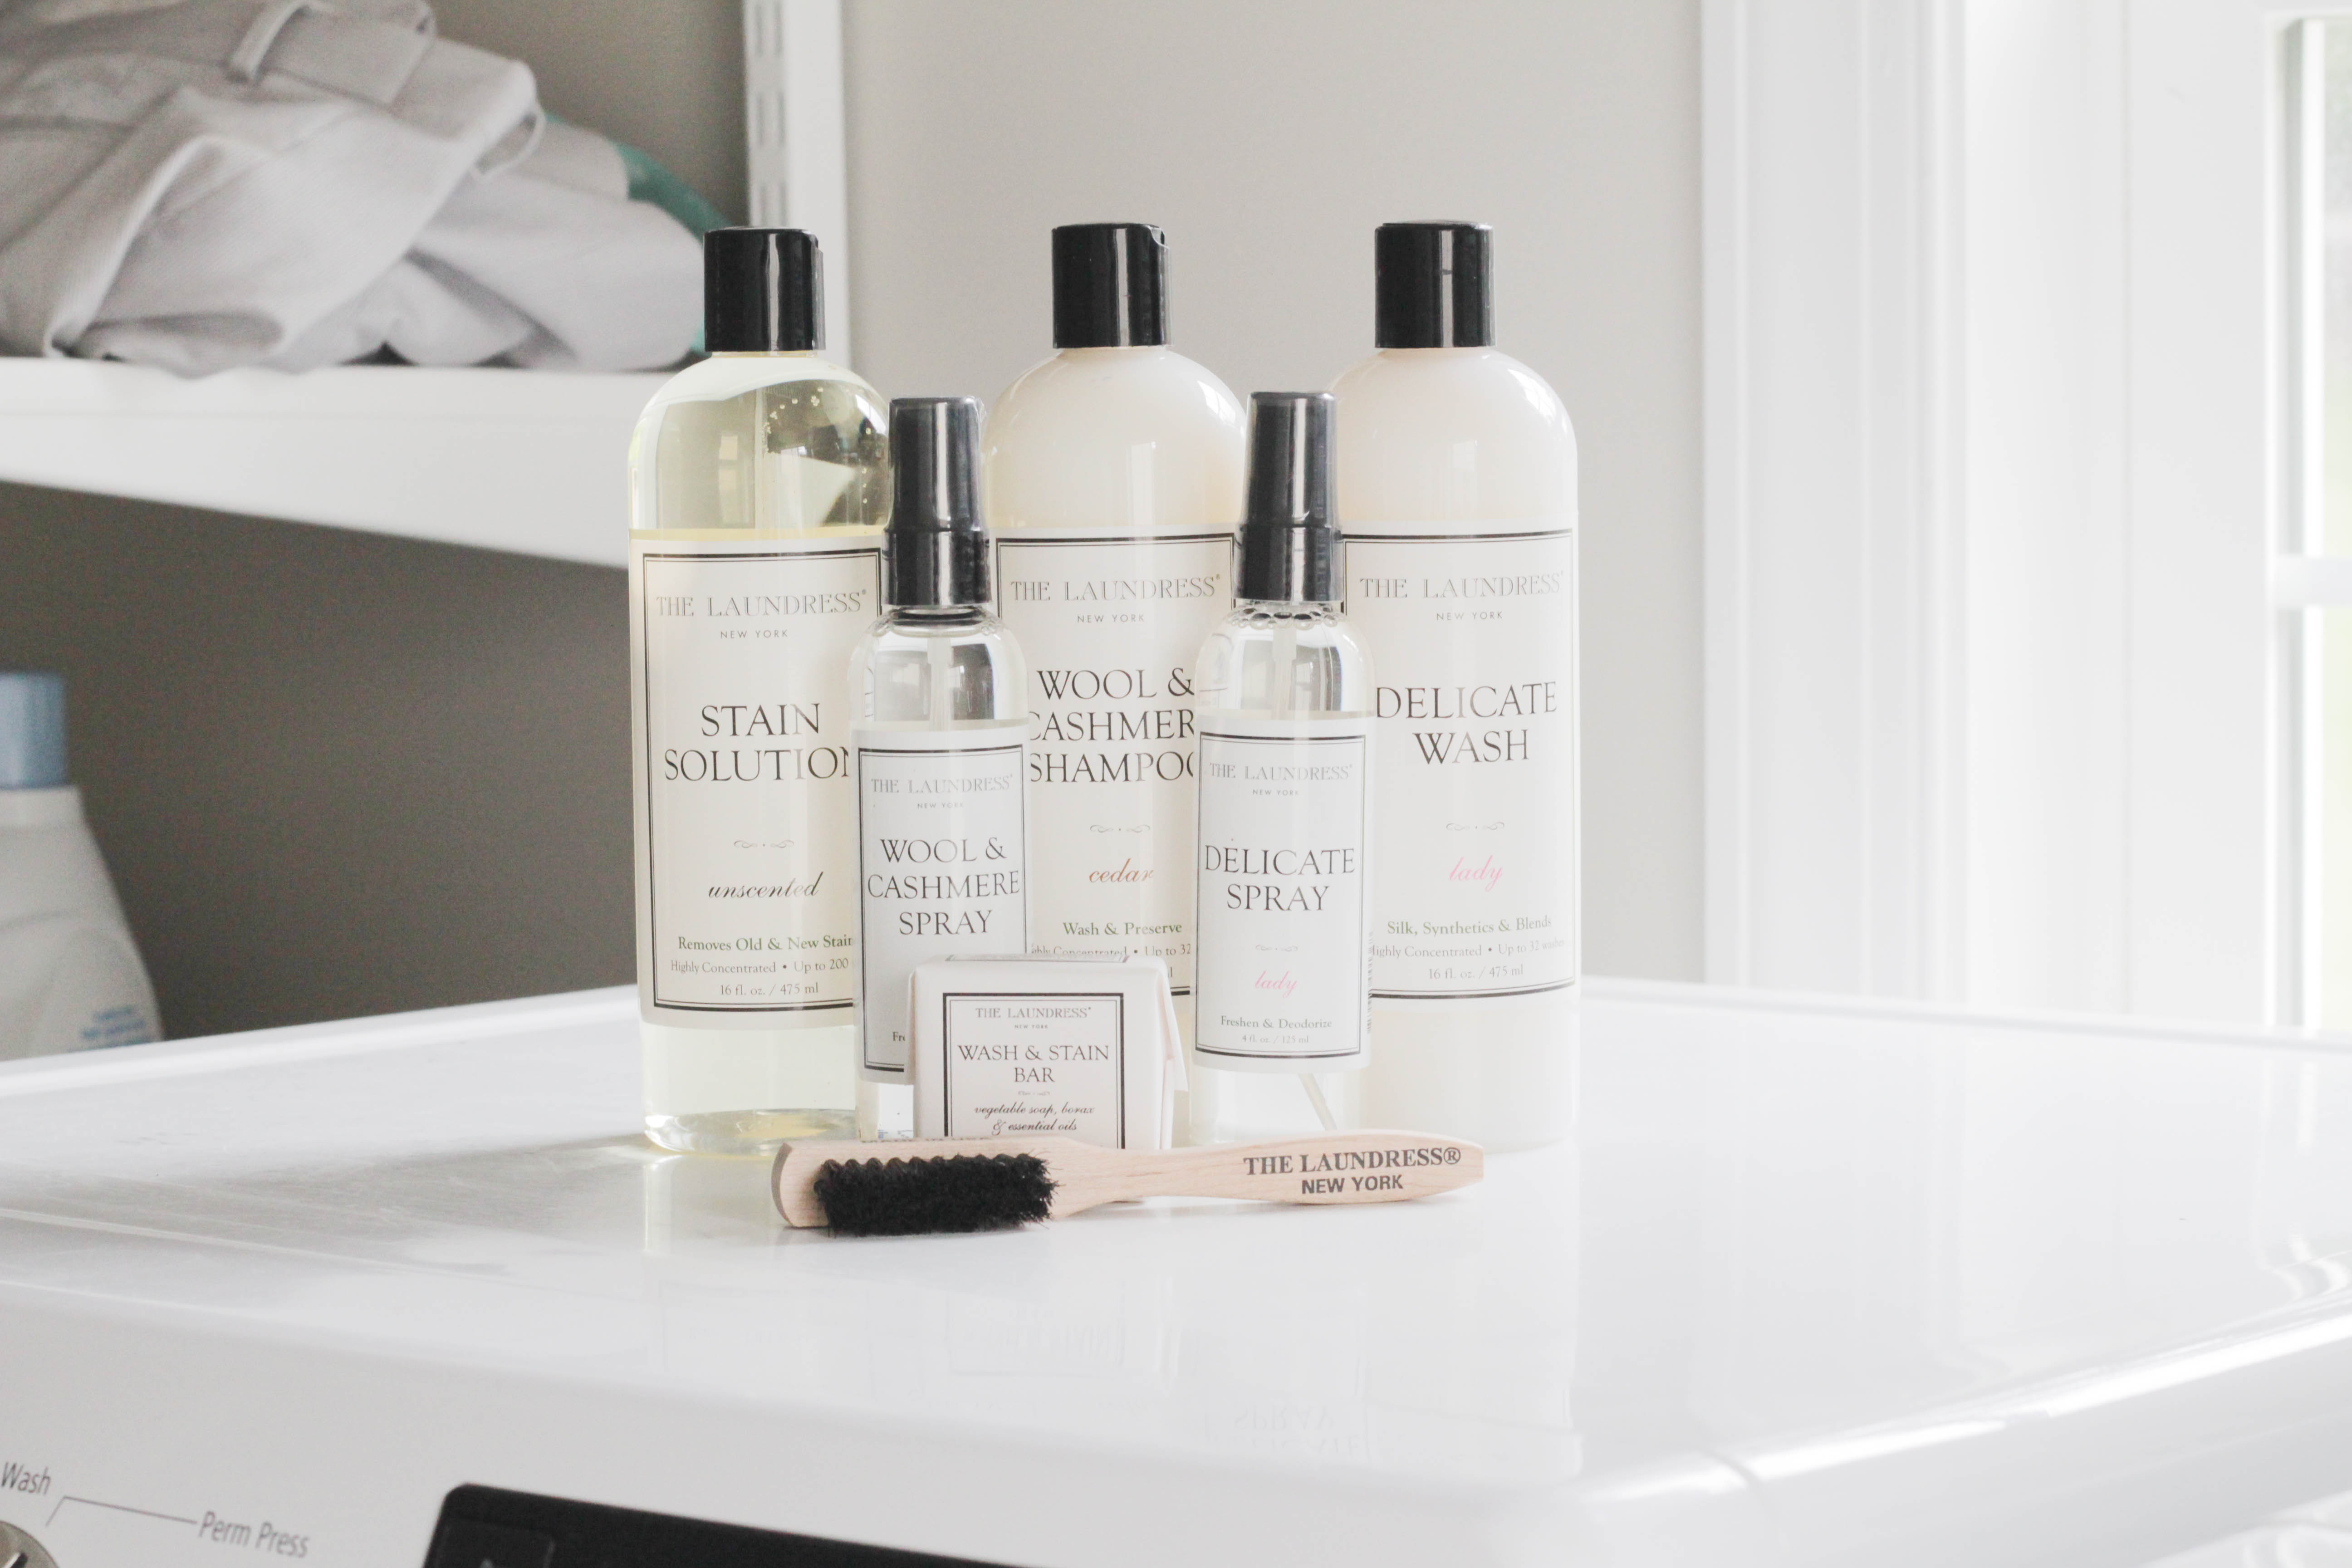 Stain Solution, Wool & Cashmere Shampoo, Wool & Cashmere Spray, Wash & Stain Bar, Delicate Spray, Delicate Wash, Stain brush